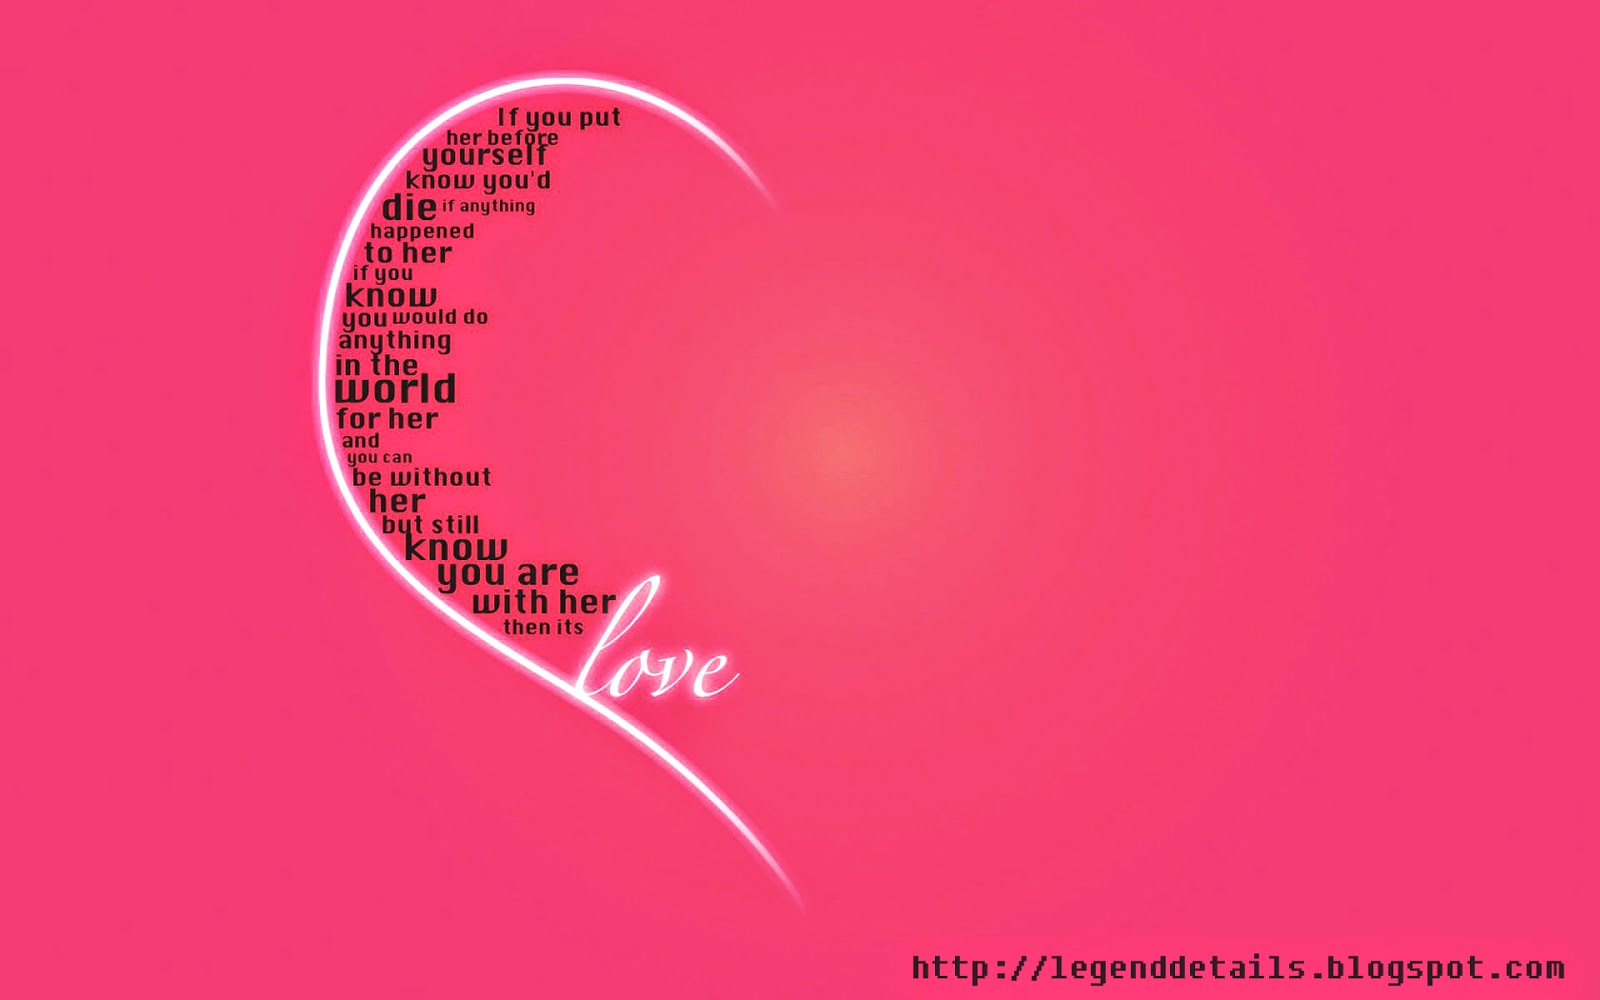 Love Express Wallpapers : New way to express your Love Legendary Quotes